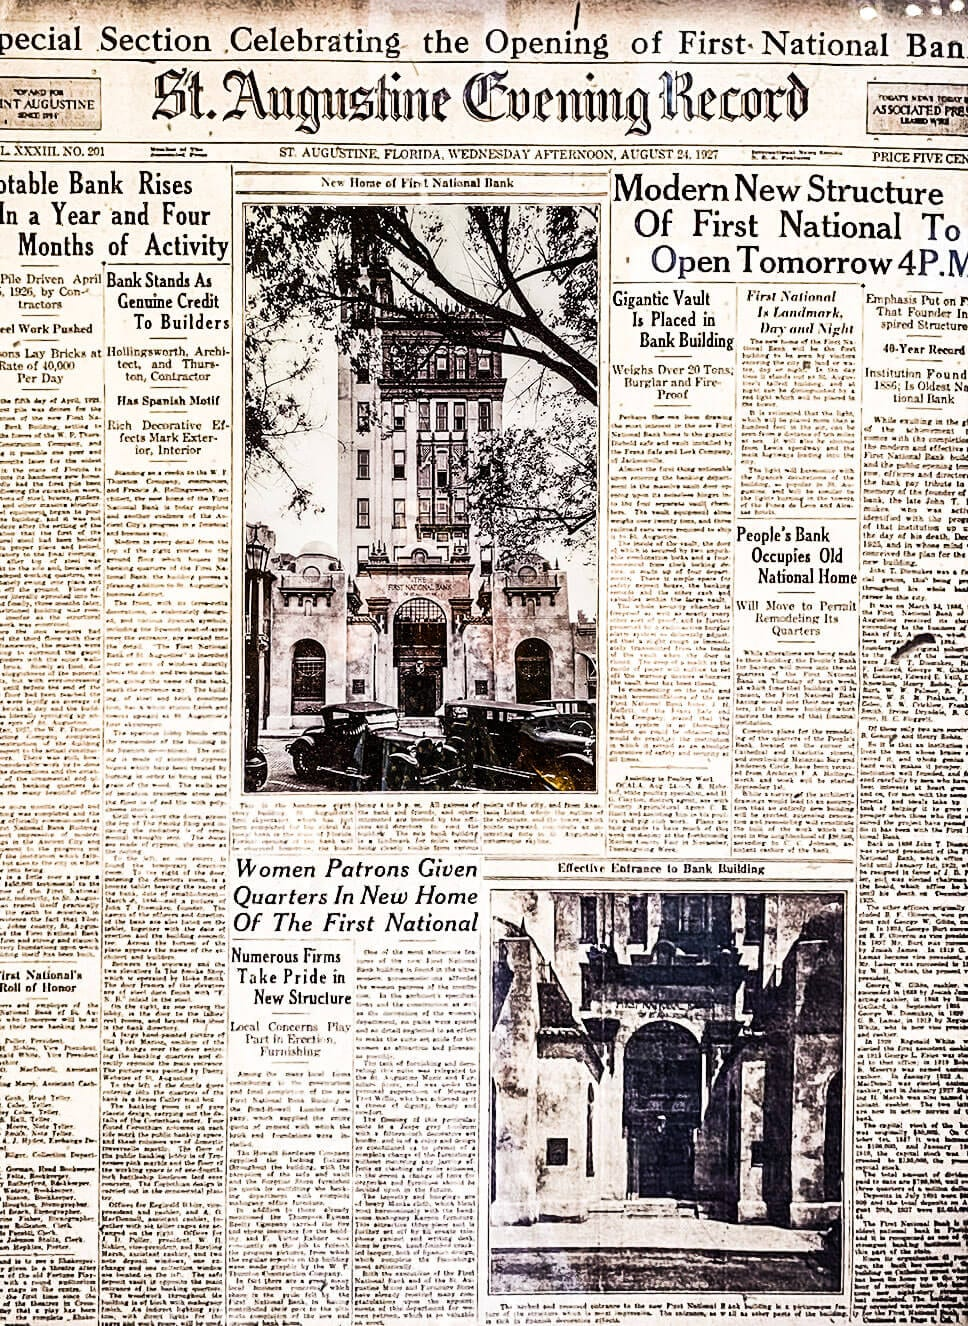 First National Bank Building Opening St. Augustine | Treasury on the Plaza History